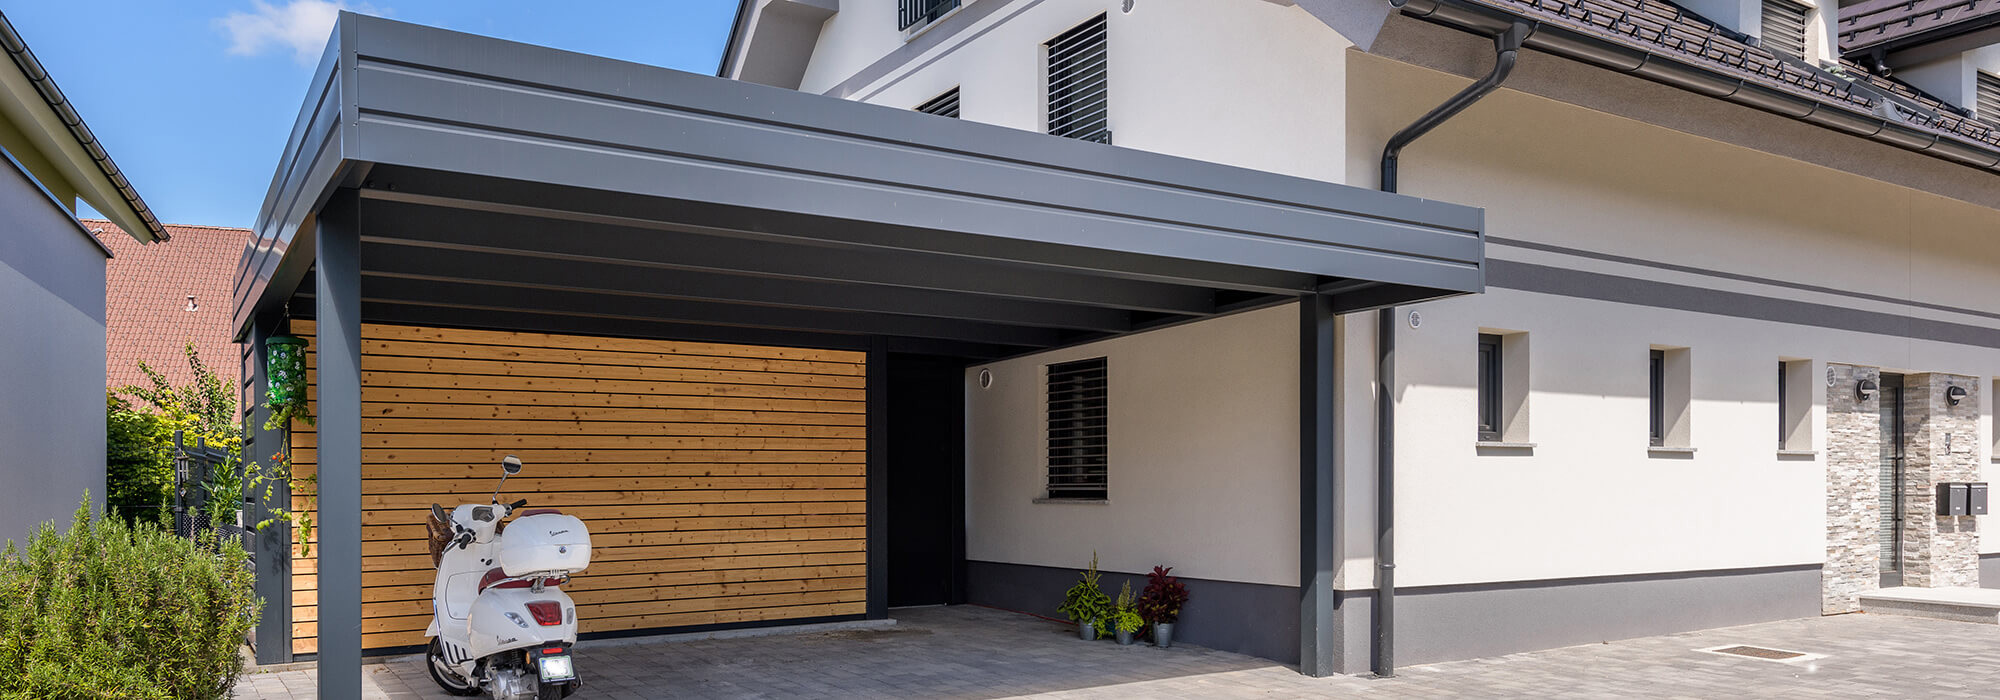 carports with sheds